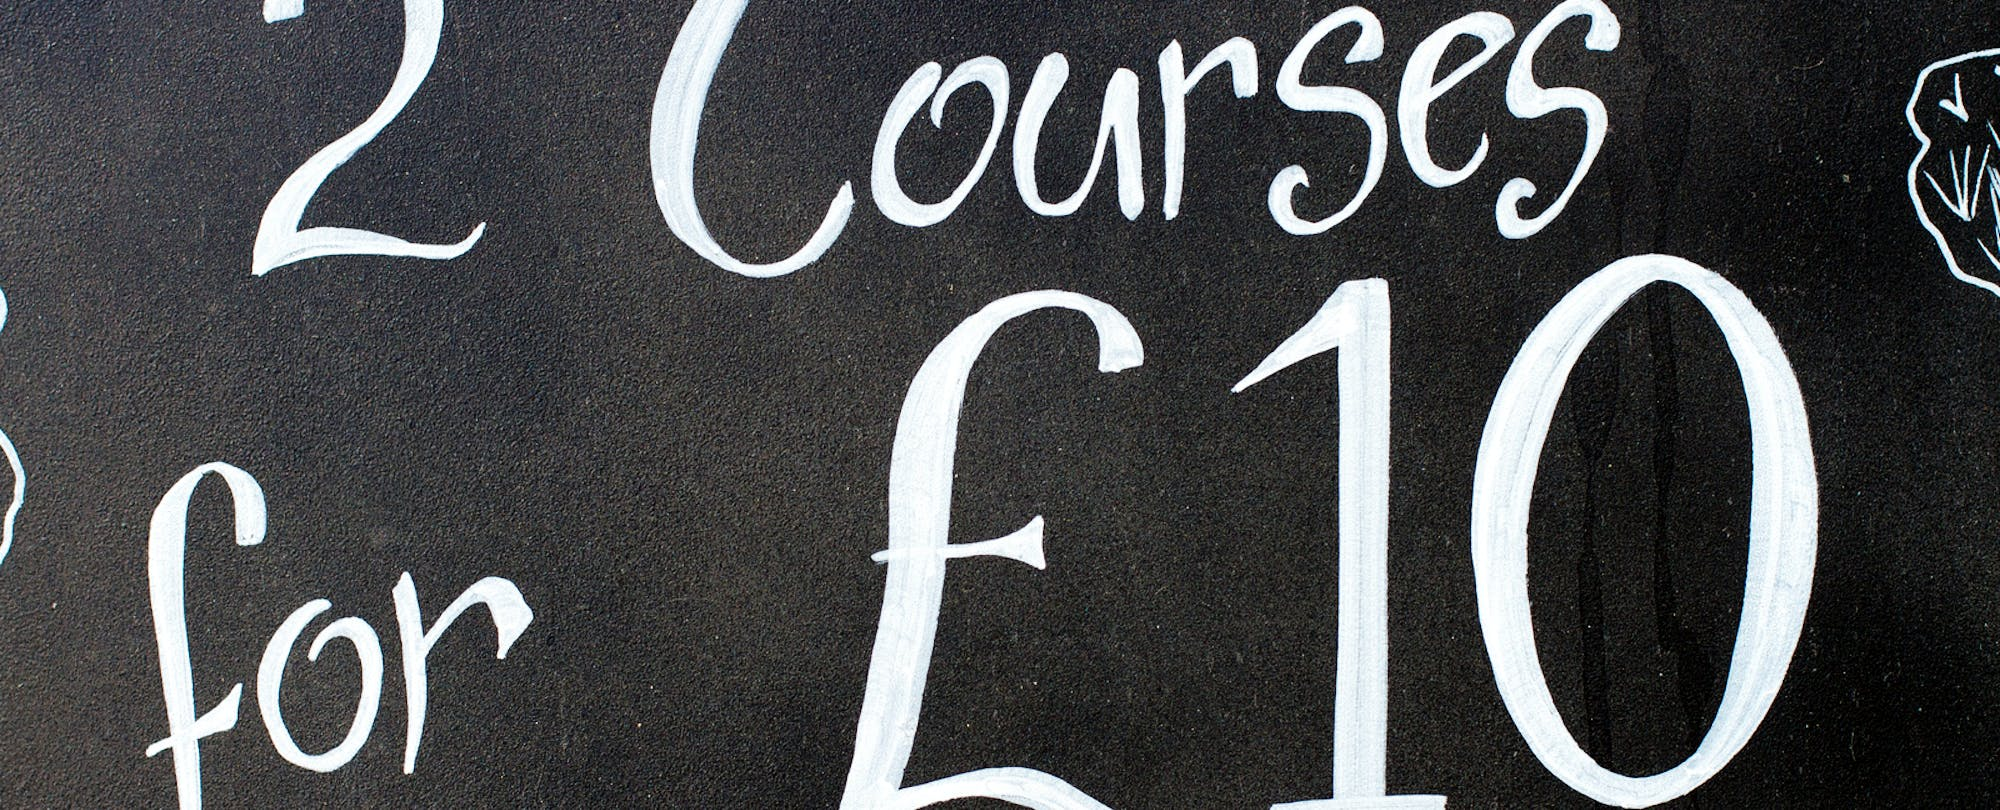 How Does Coursera Make Money?